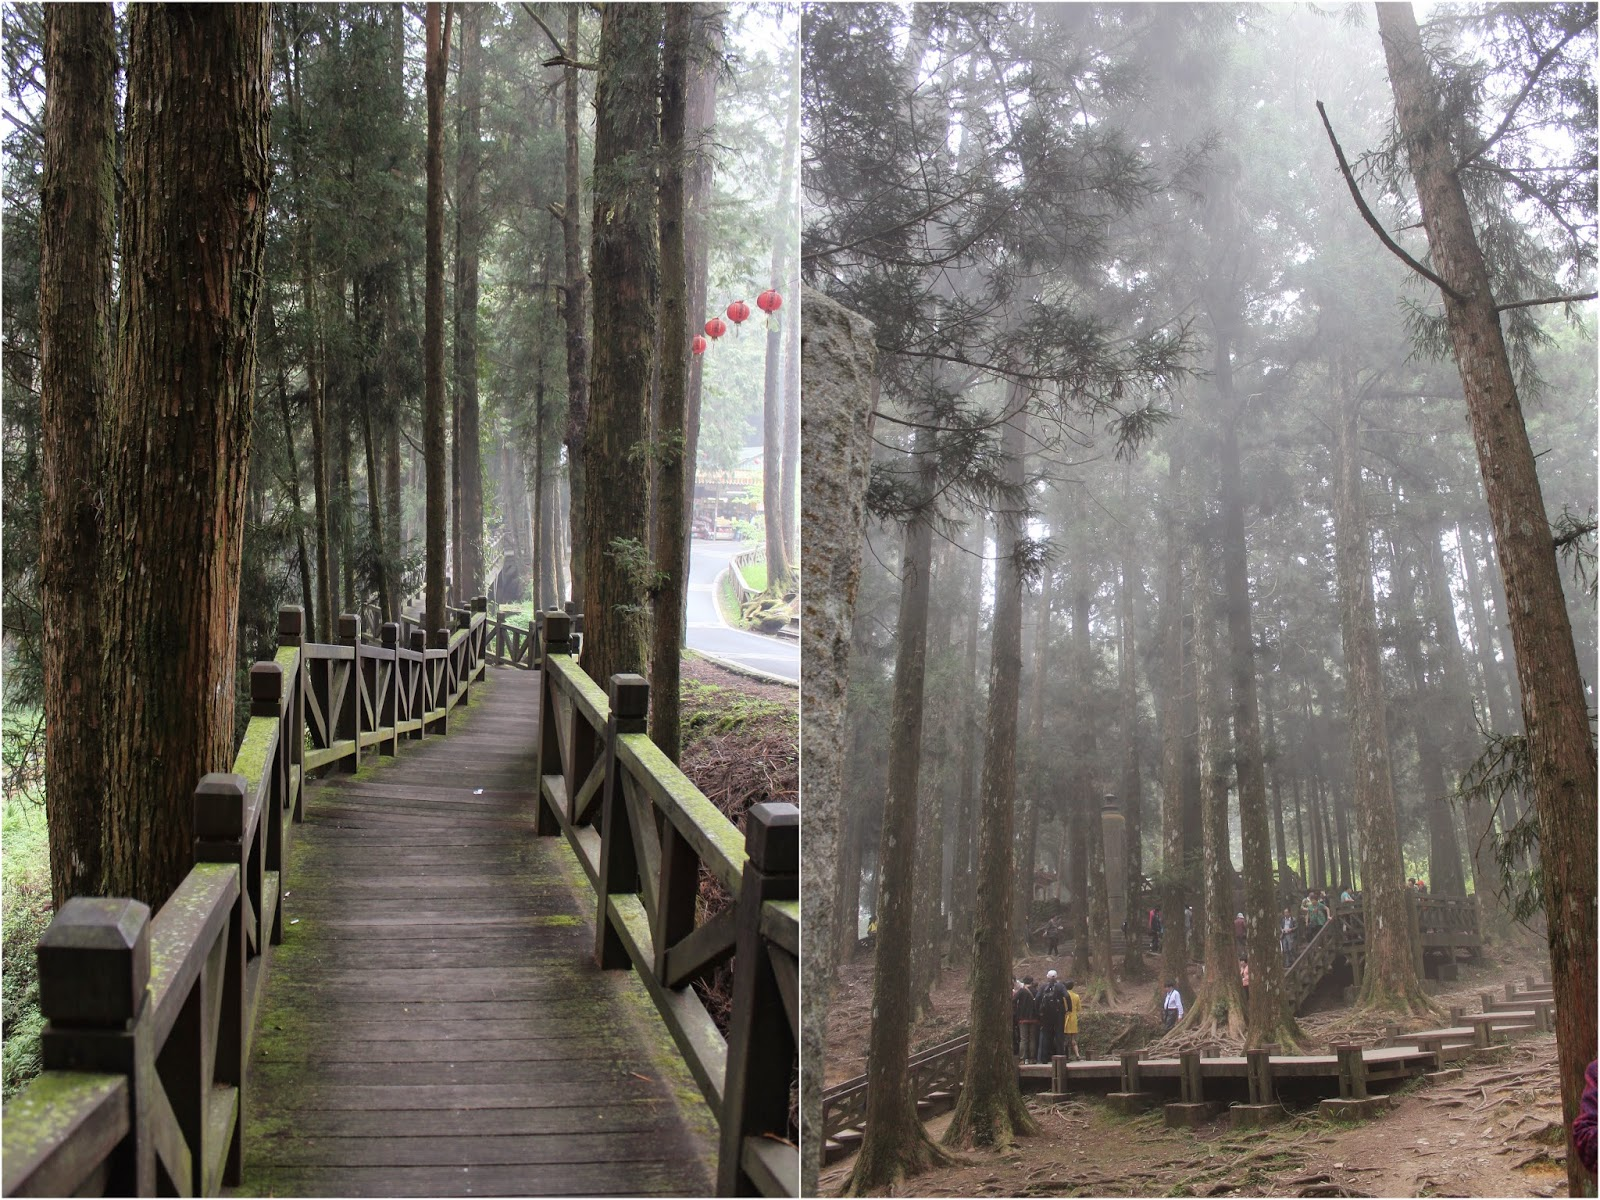 Food is our Religion: Taiwan - Part 2 (Alishan) + Smoking Panda ... After The Sunset